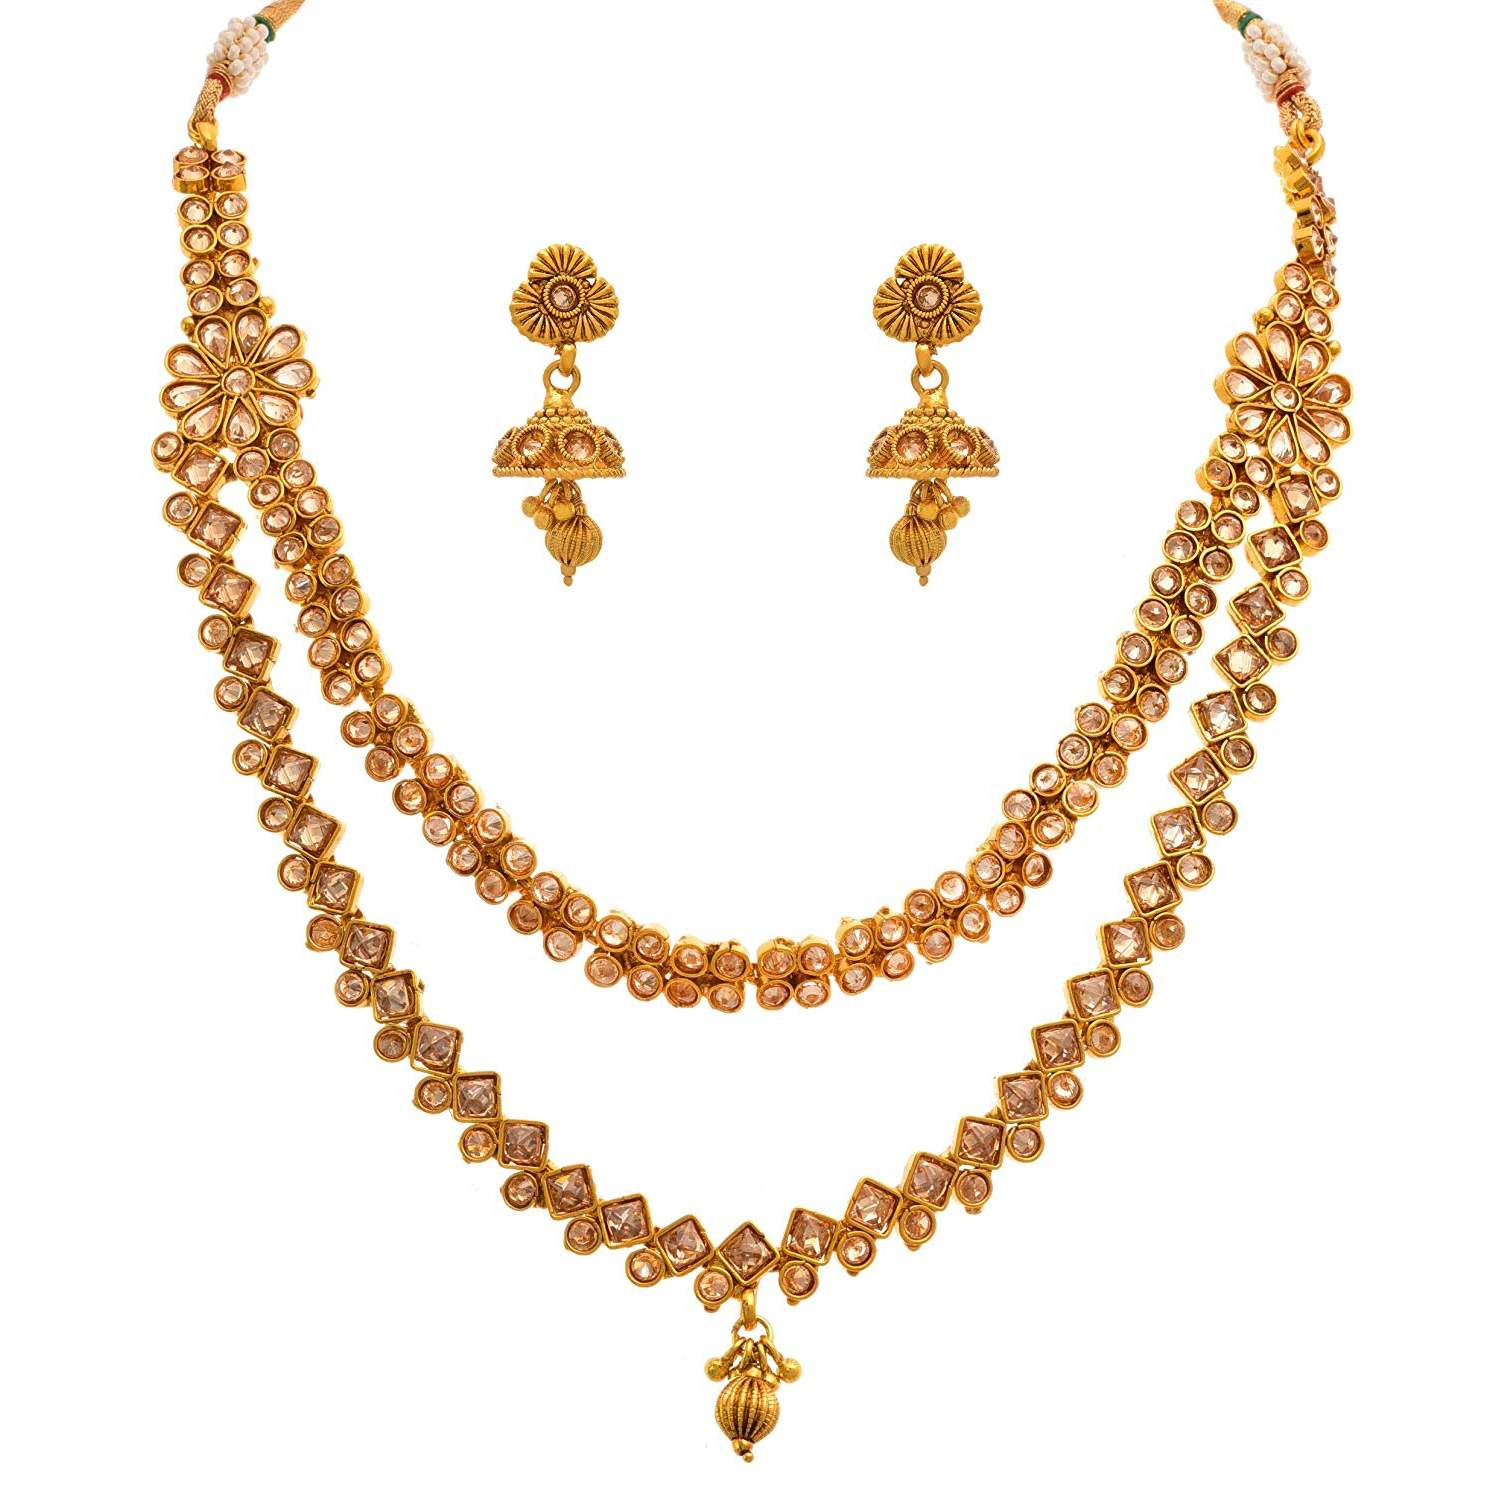 11de43112fa jewellery Necklace set for women & girls – JFL - Jewellery for Less